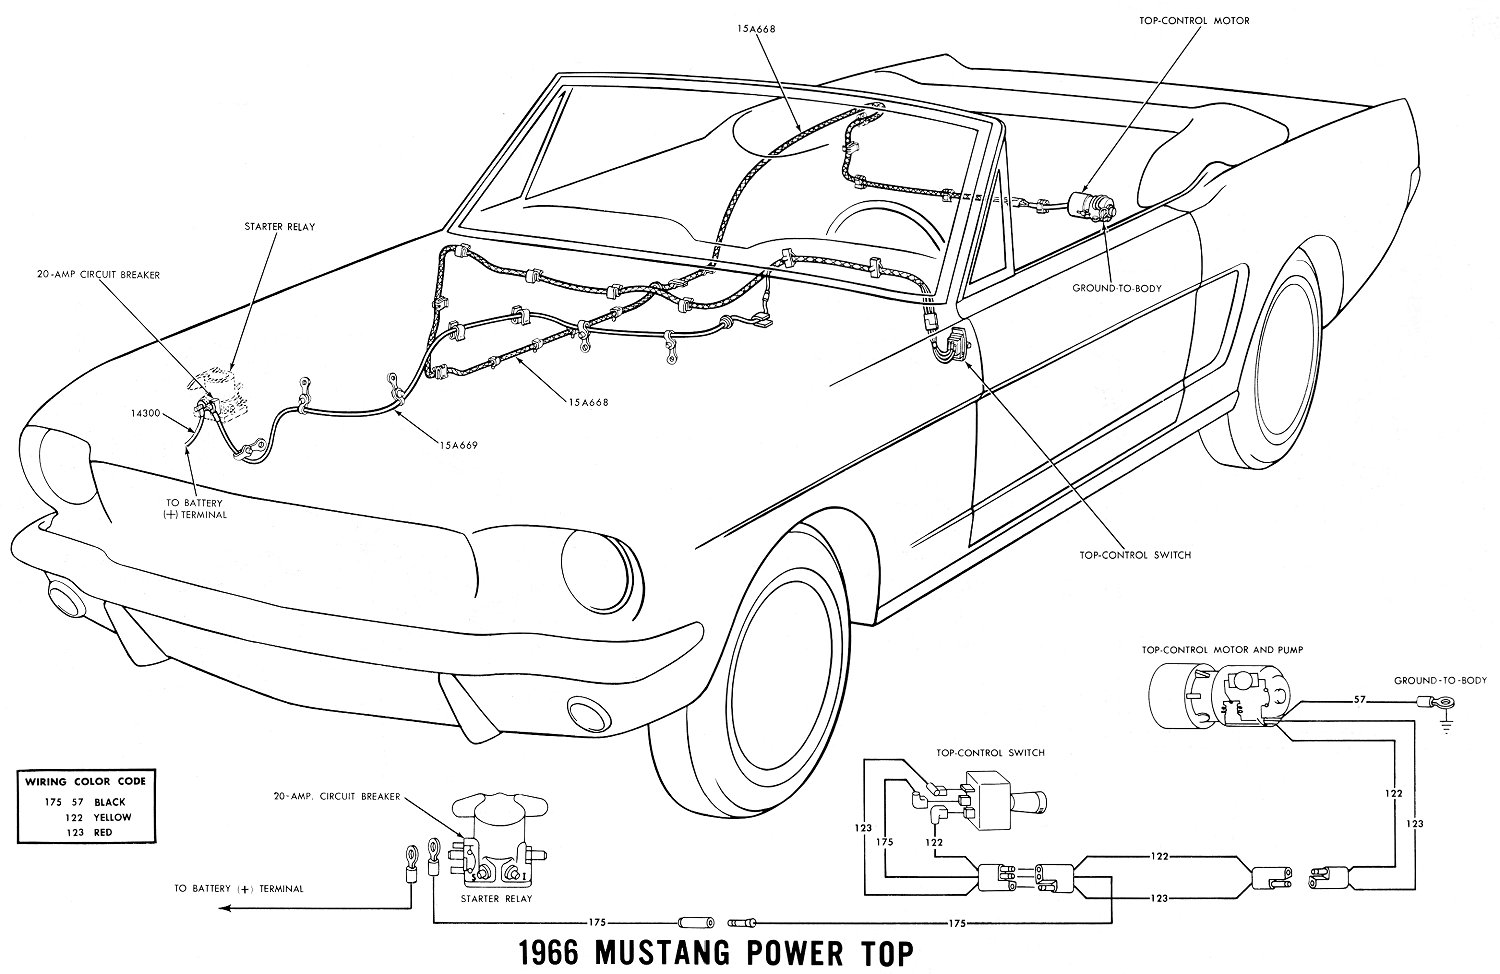 1969 mustang radio wiring diagram obd0 to obd1 vintage diagrams 66 power convertible top details